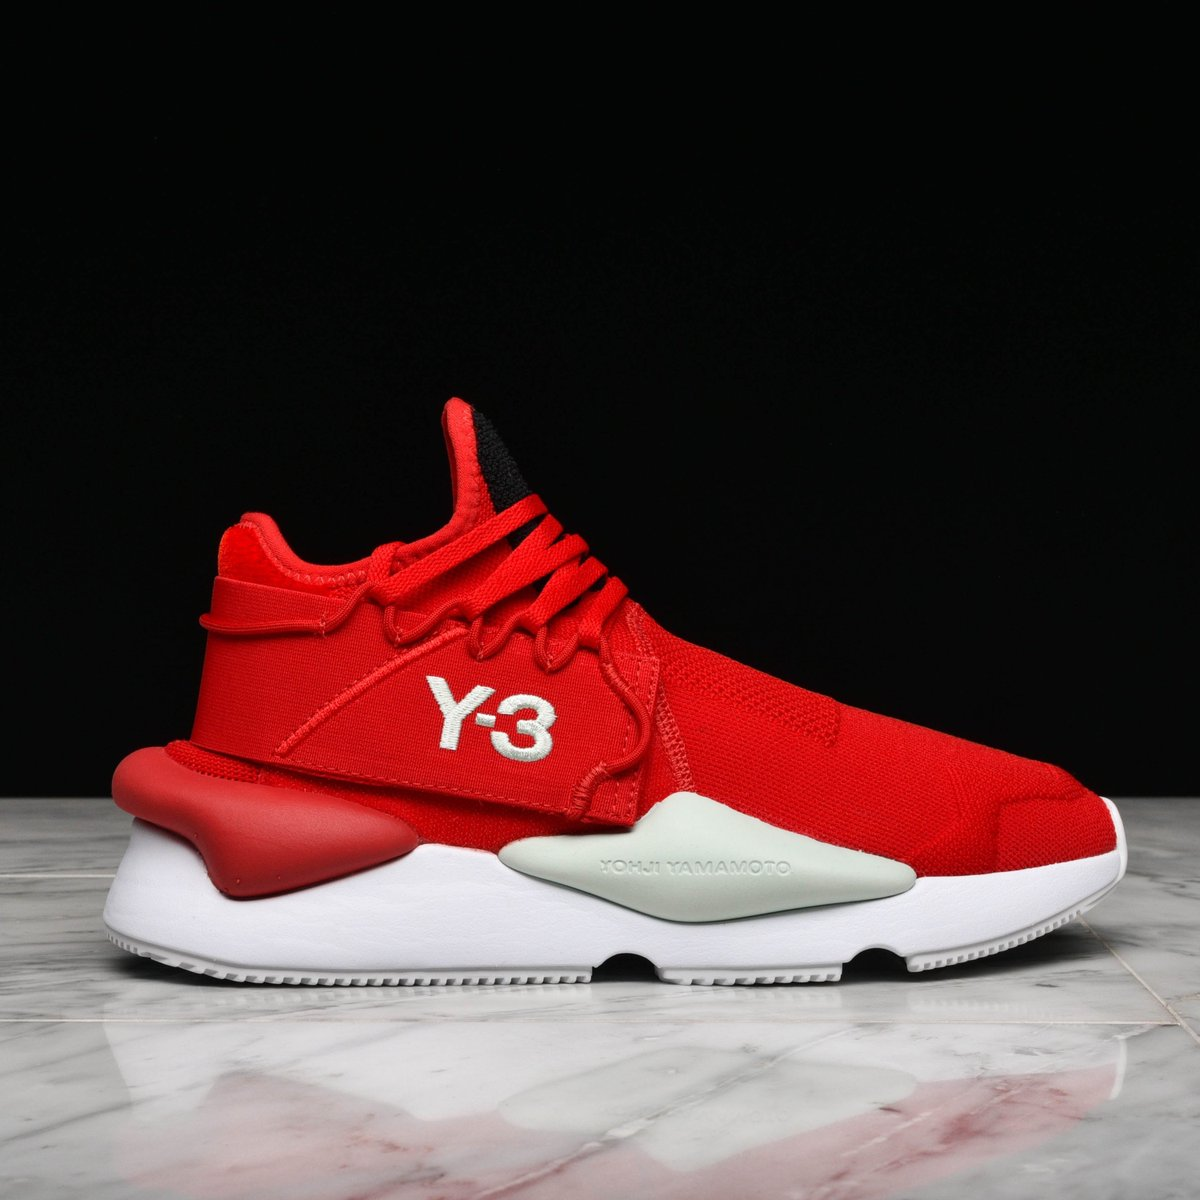 61f43b1036e70 JUST IN  Y-3 Kaiwa Knit (Red) is available now in-store and online. Shop   https   goo.gl KExXro pic.twitter.com ebioTB4BDm